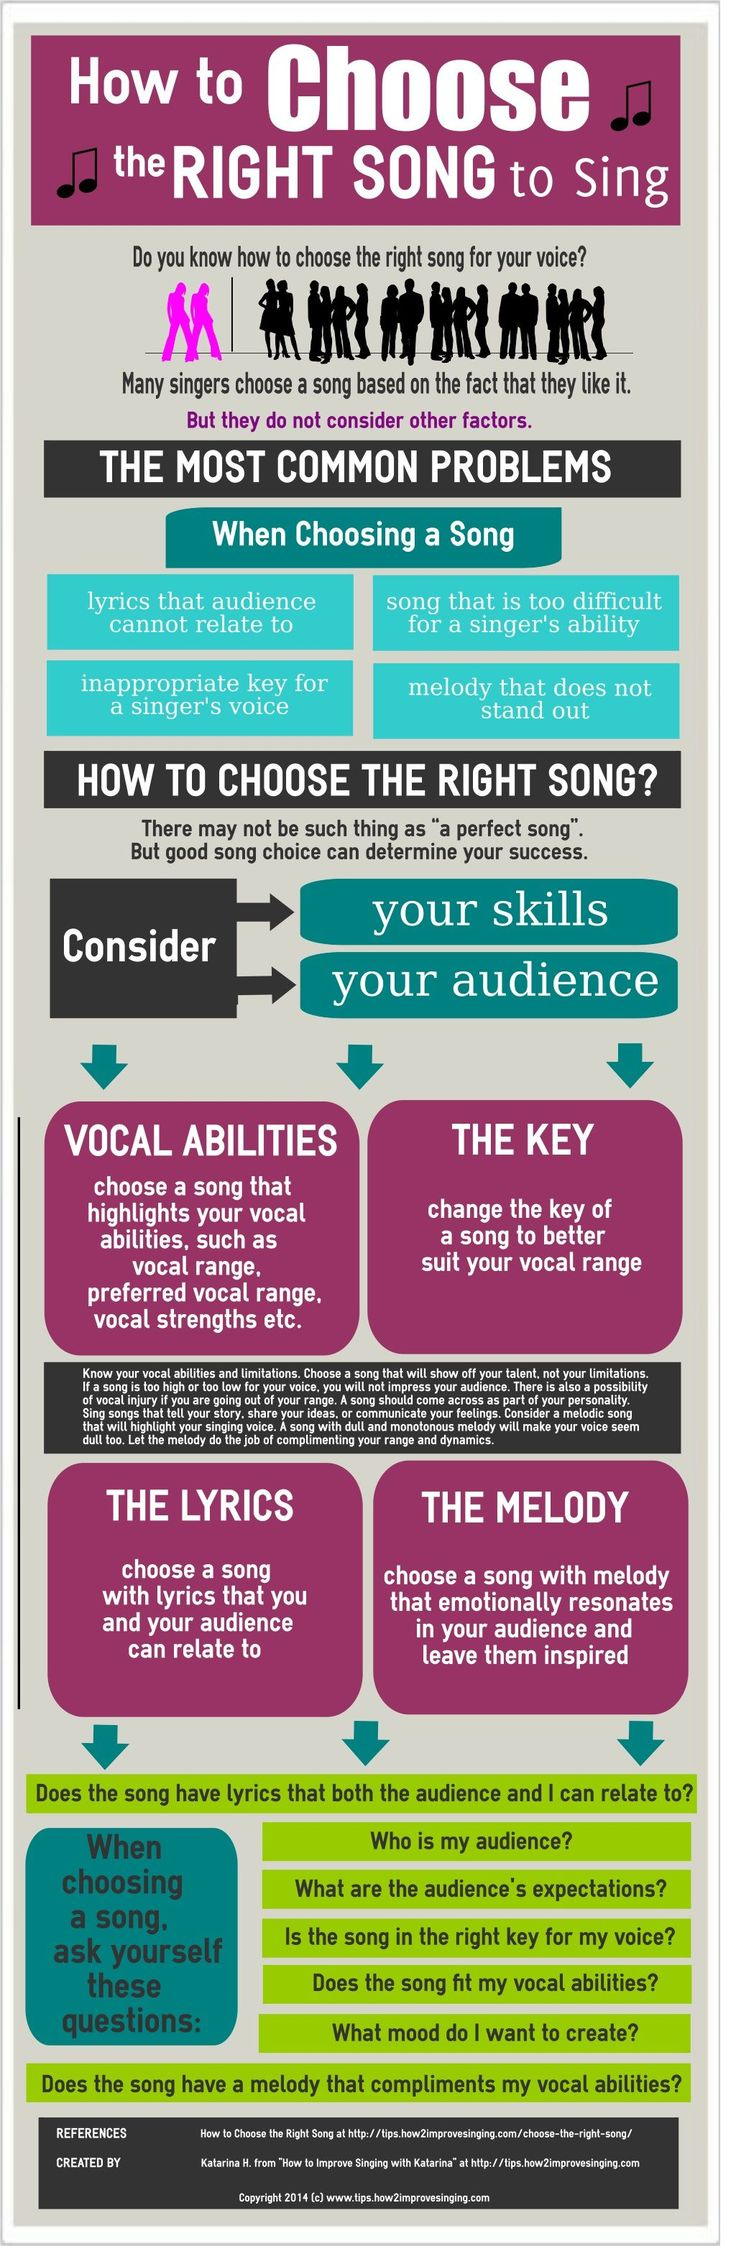 Do you know how to choose a good song for your voice and vocal skills? Find out more at: http://tips.how2improvesinging.com/how-to-choose-the-right-song-to-sing-infographic/